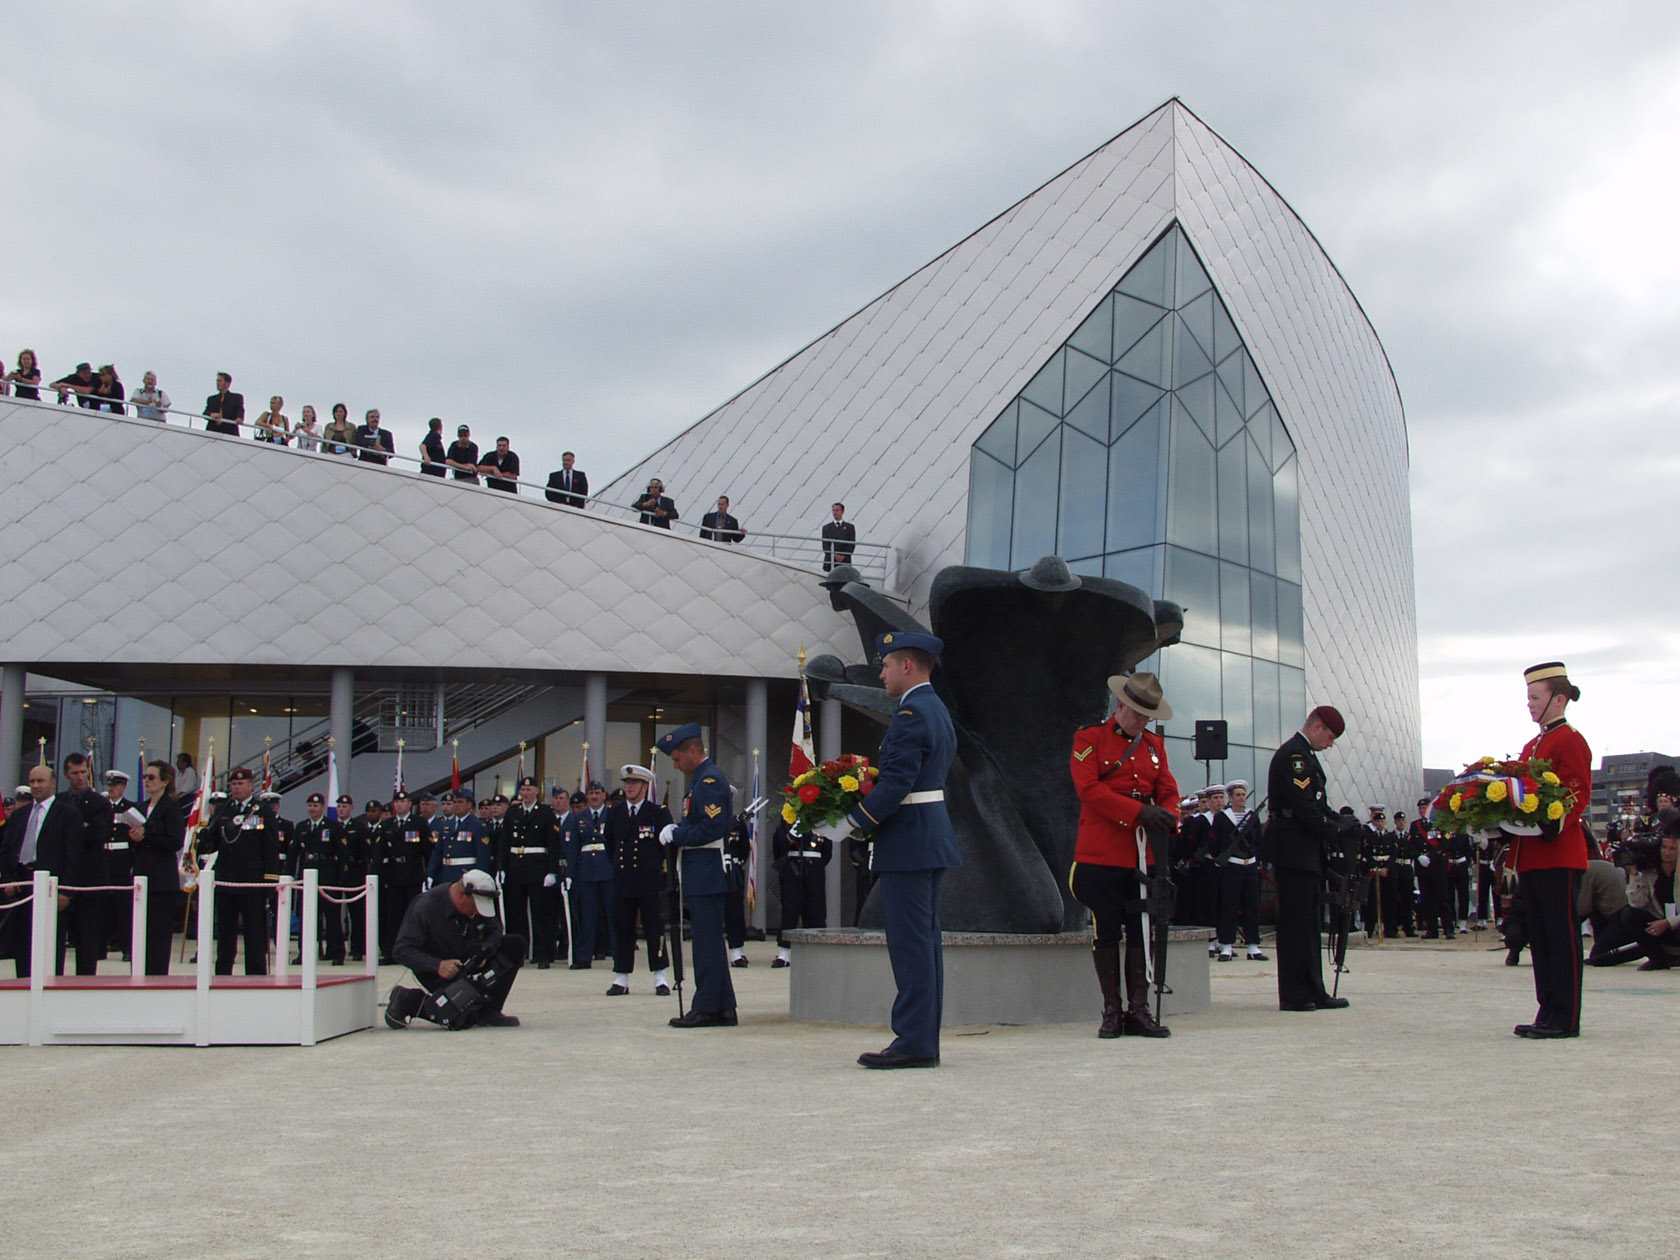 Colour photo. People in uniform stand at attention in front of the Juno Beach Centre.